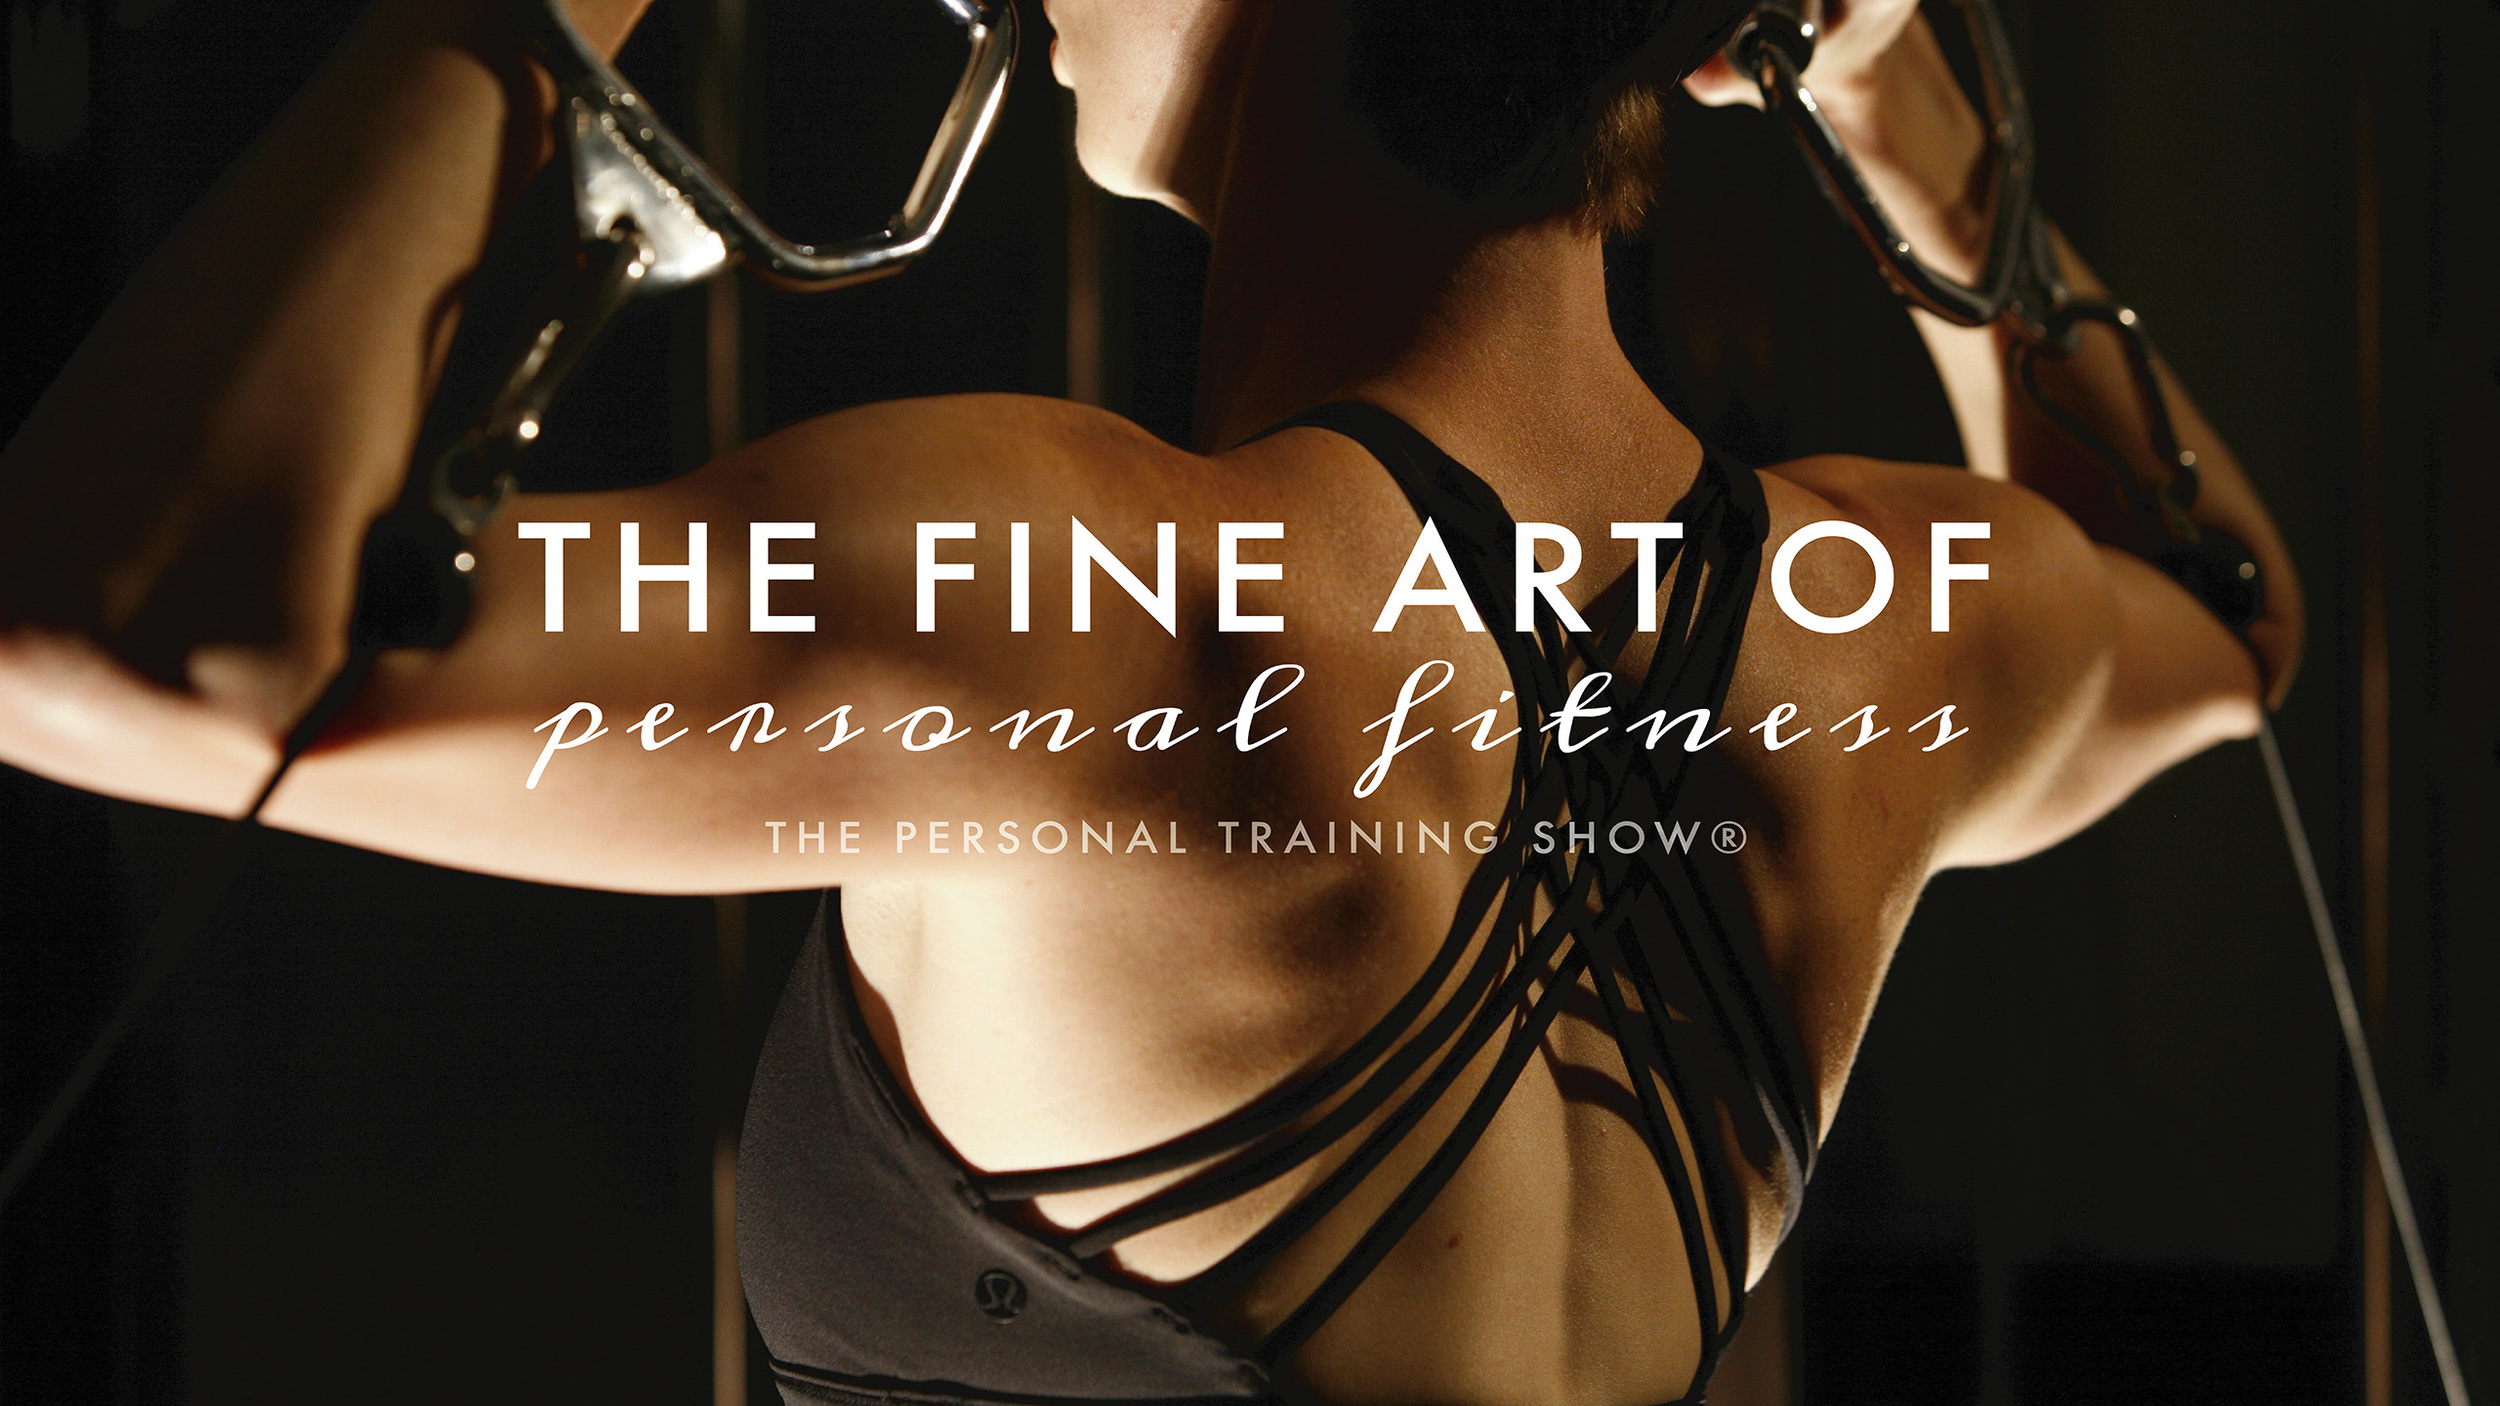 The Fine Art Of Personal Fitness